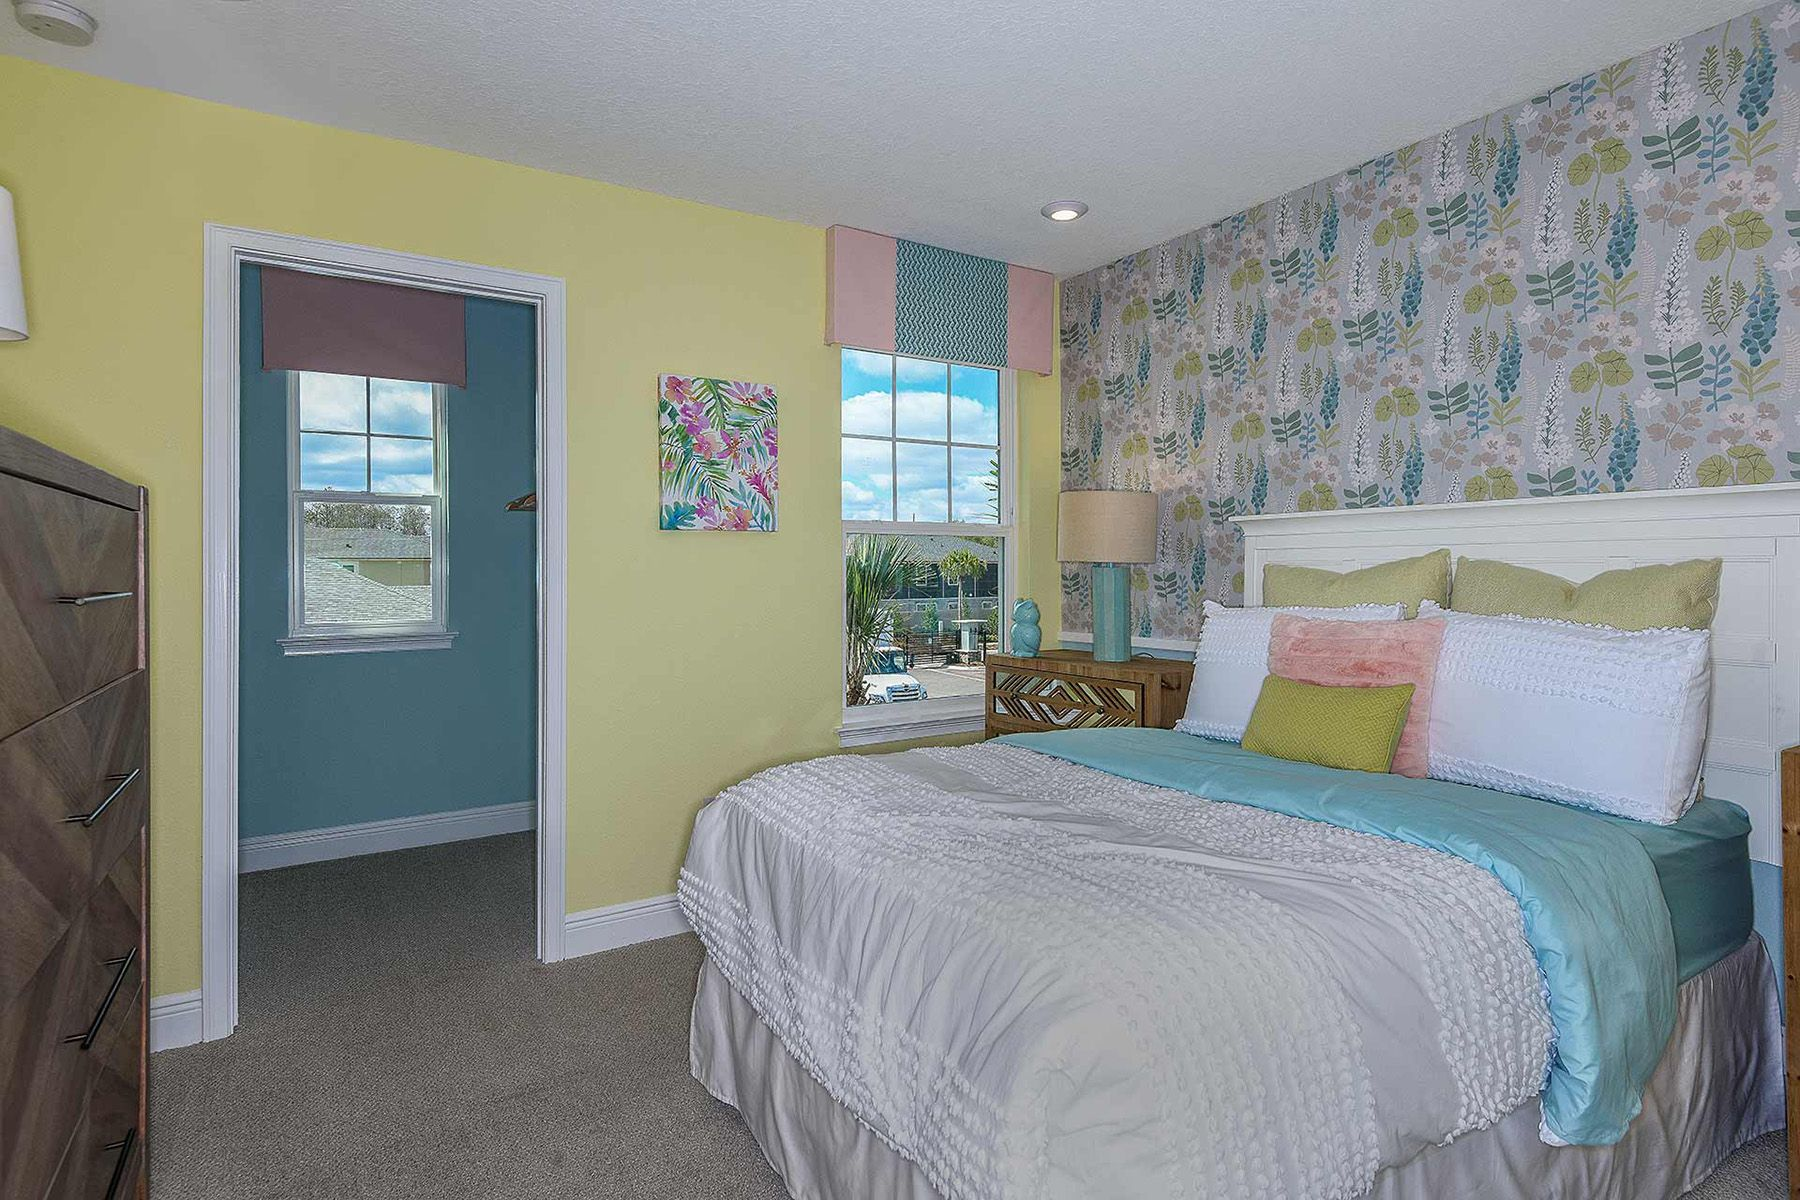 Bedroom featured in the Venice By Mattamy Homes in Tampa-St. Petersburg, FL